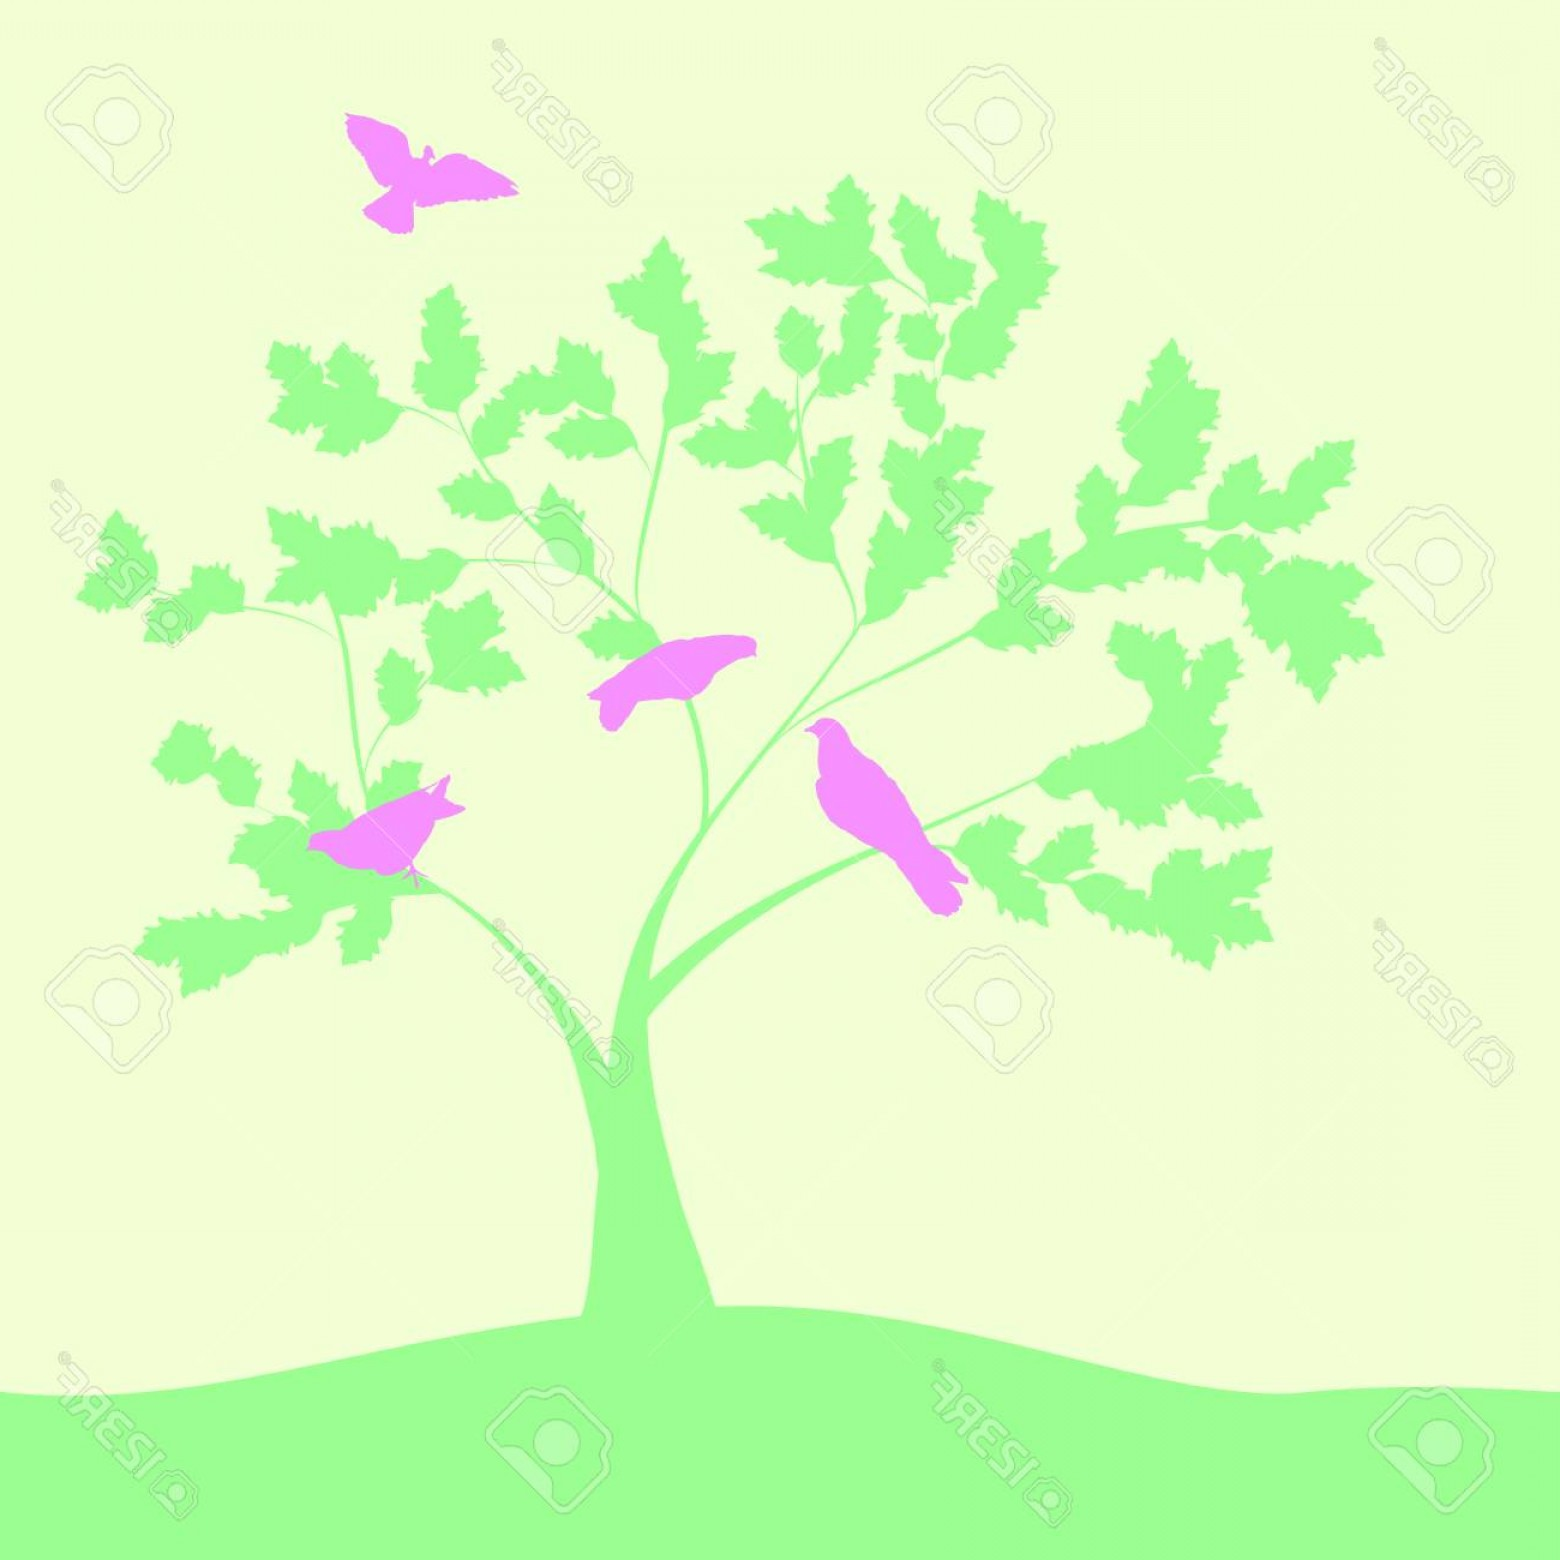 Spring Vector Silhouette: Photostock Vector Spring Vector Illustration With Doves On Tree Silhouette